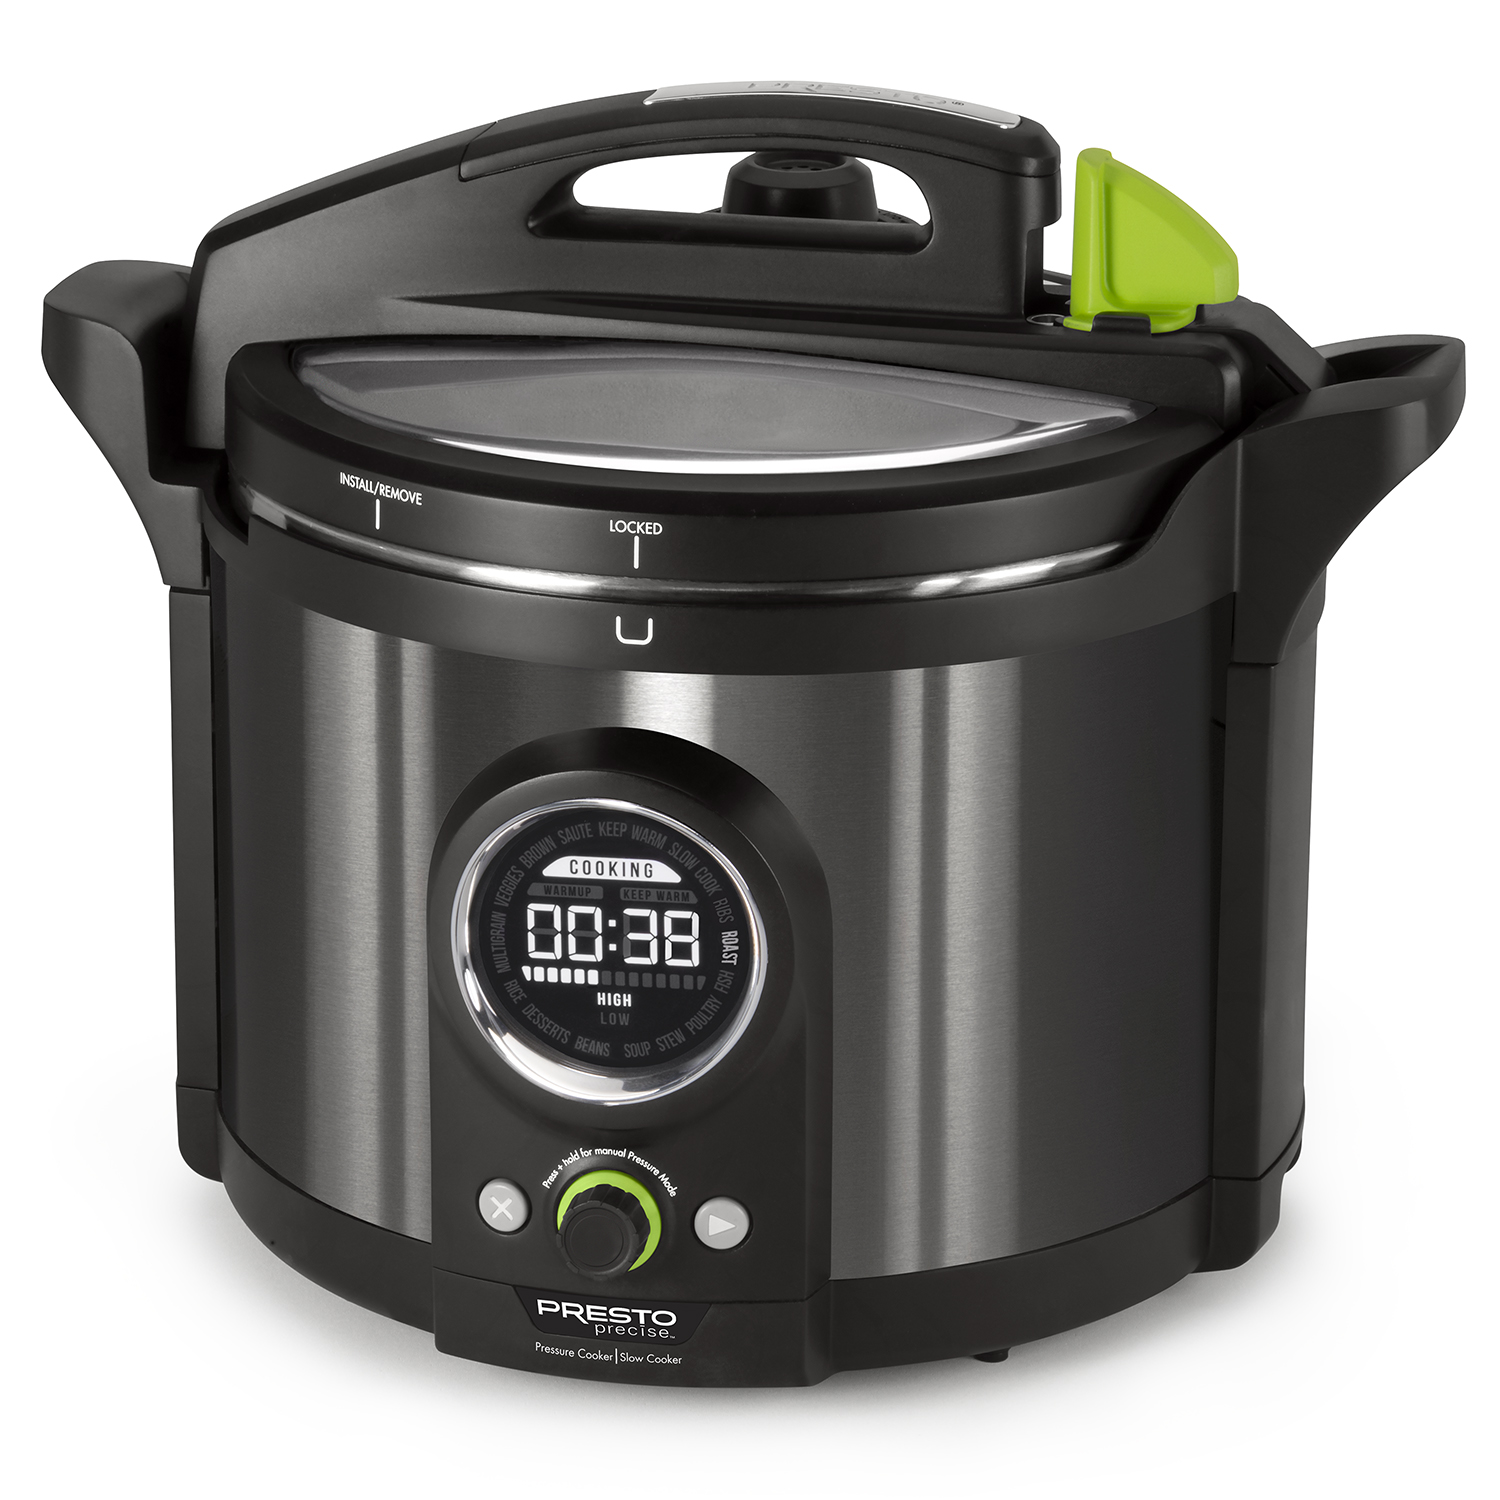 PRESTO 02143 10 QUART ELECTRIC PRESSURE COOKER WITH 19